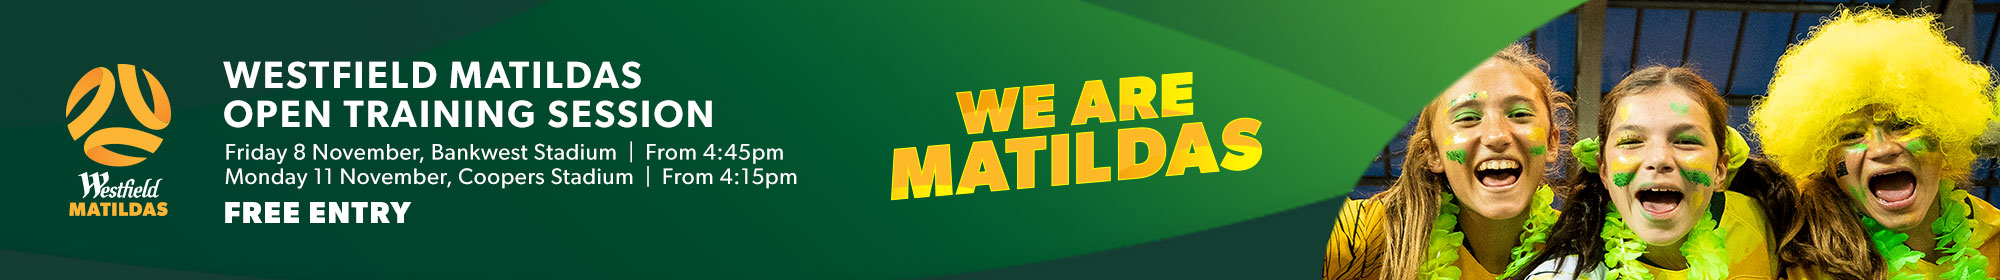 Matildas-Chile-Open-Training-Session